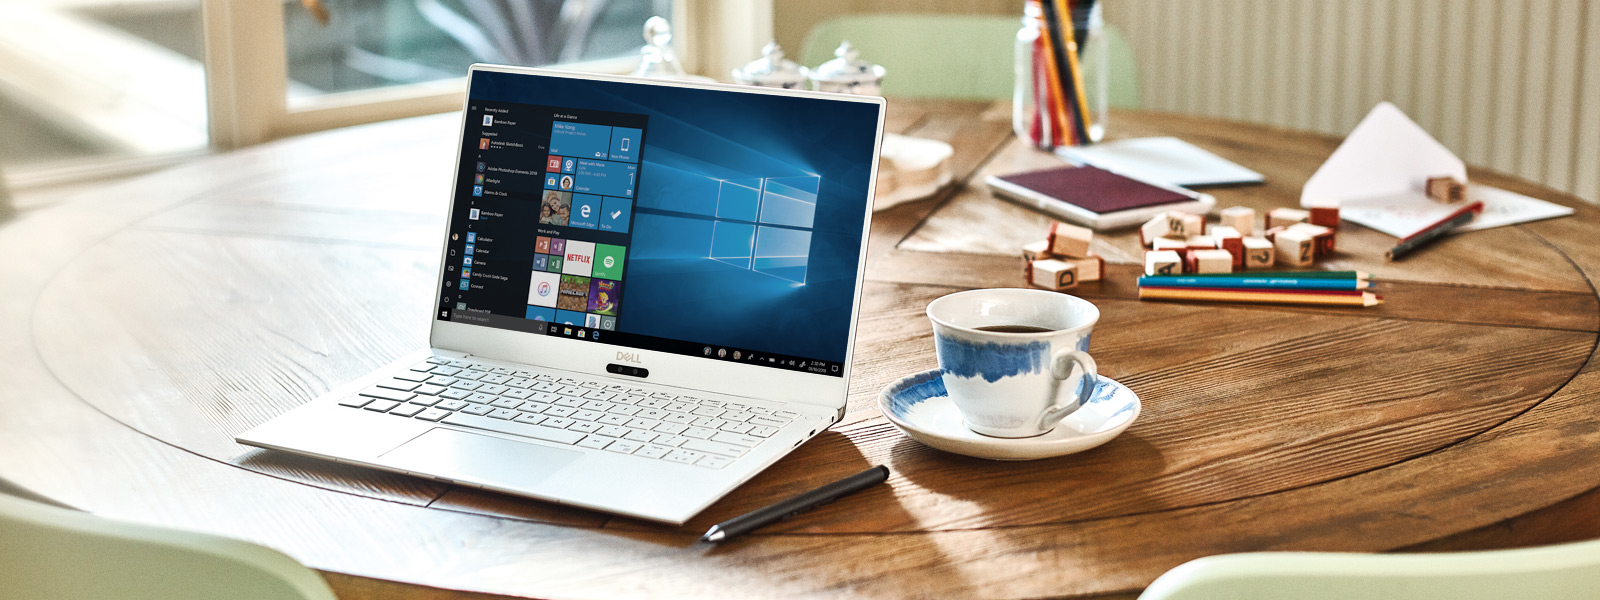 A Dell XPS 13 9370 sits open on a table with a Windows 10 start screen.